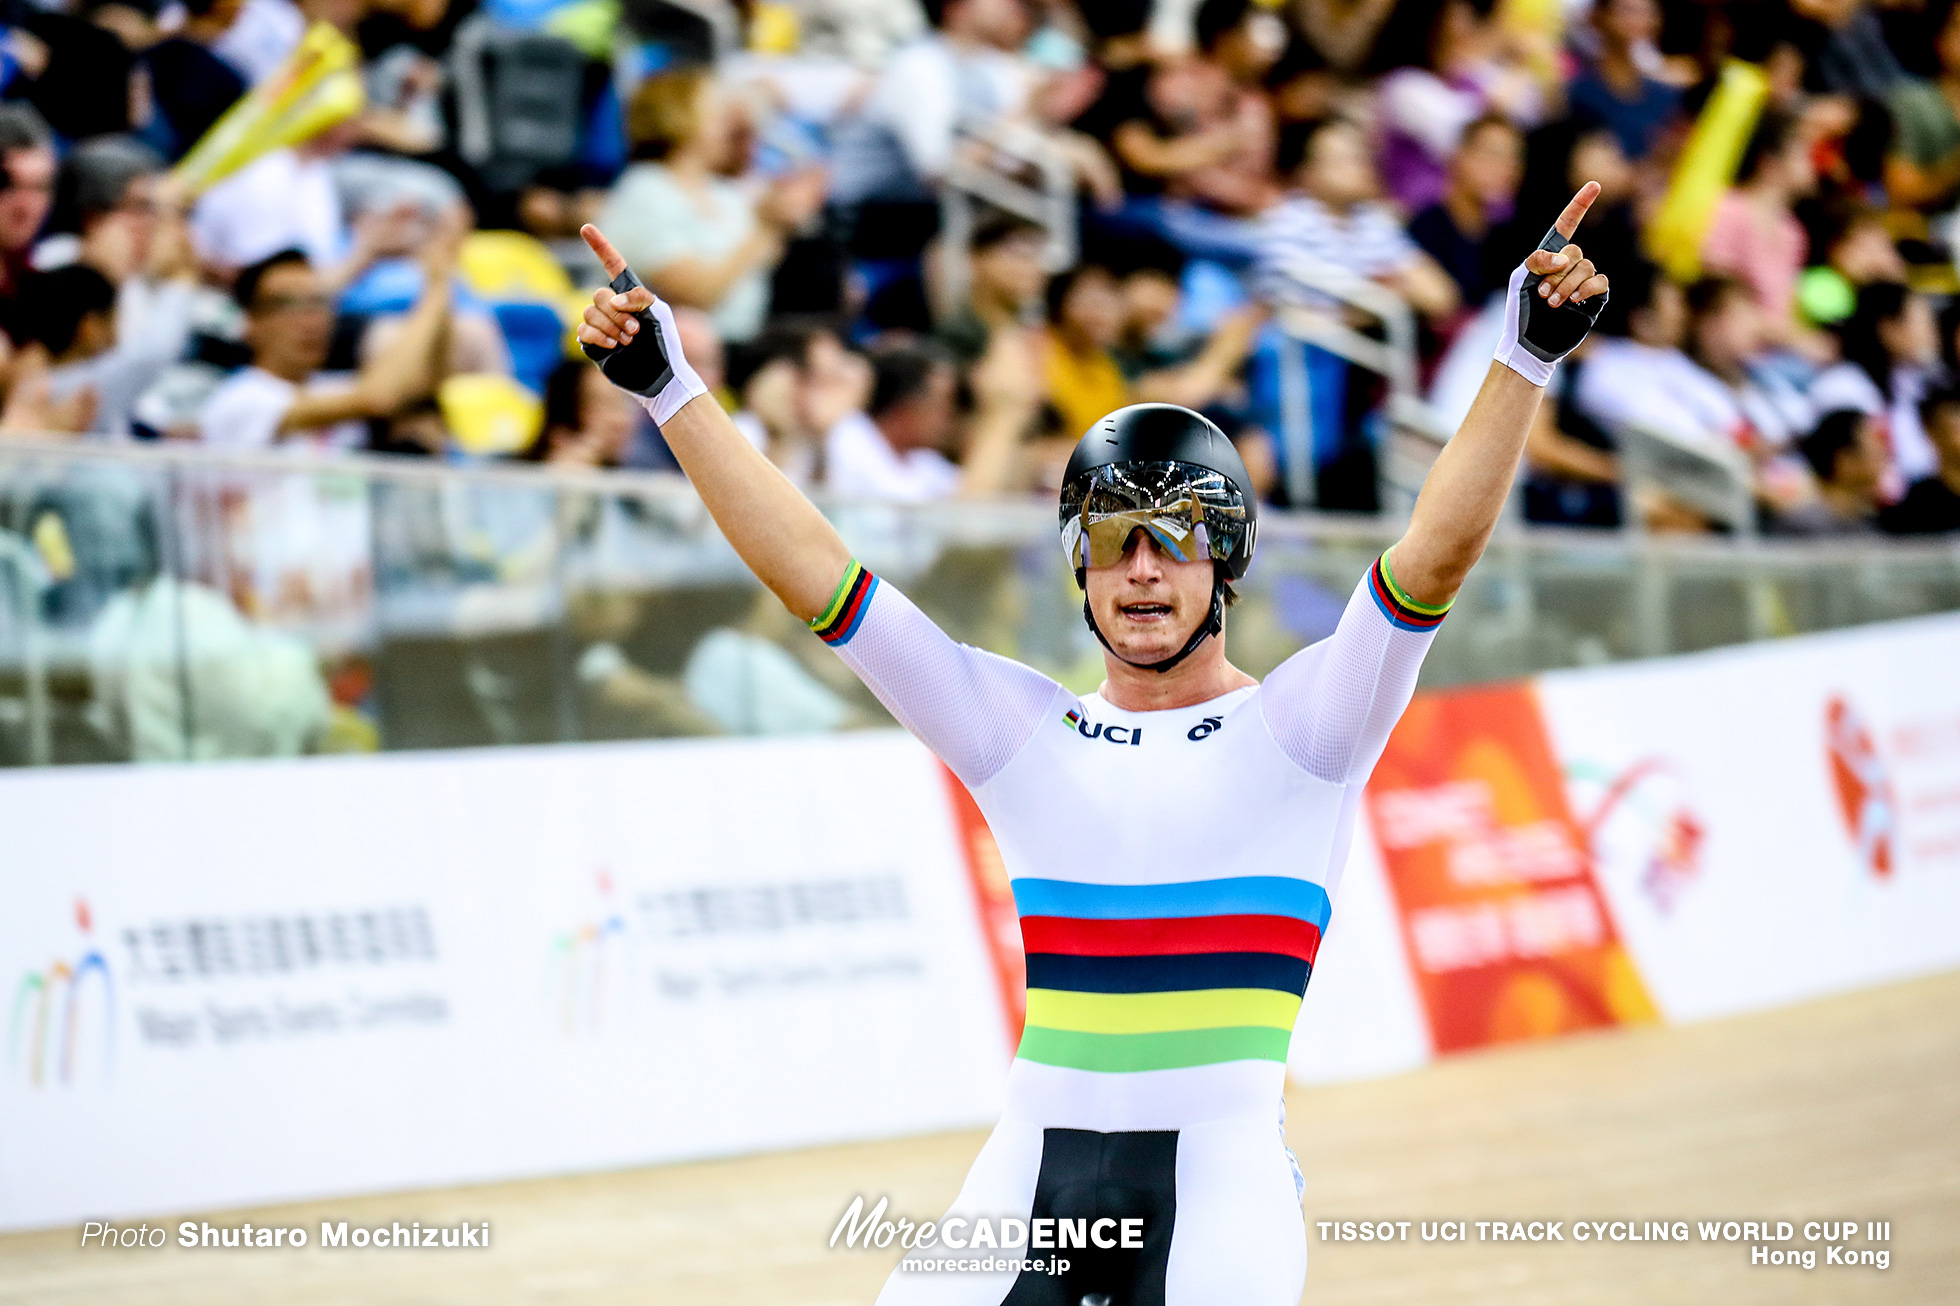 Campbell Stewart / Point Race / Men's Omnium / TISSOT UCI TRACK CYCLING WORLD CUP III, Hong Kong